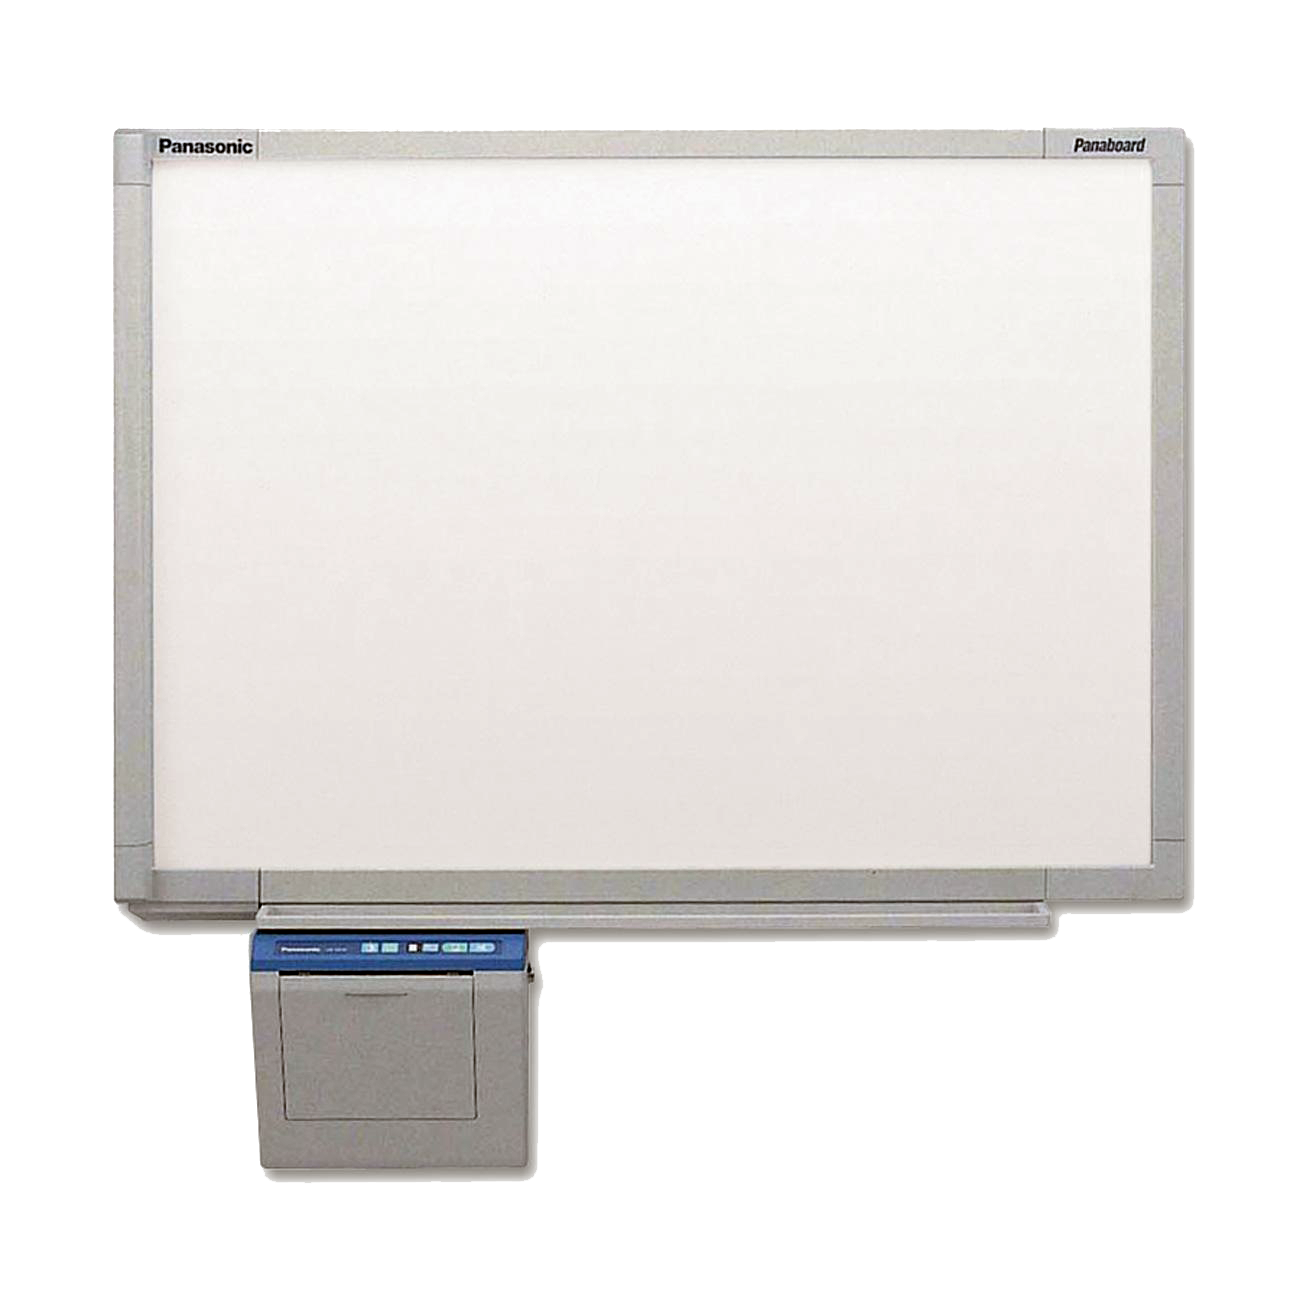 Panasonic Electronic Whiteboard Panasonic Electronic Whiteboard 10324483